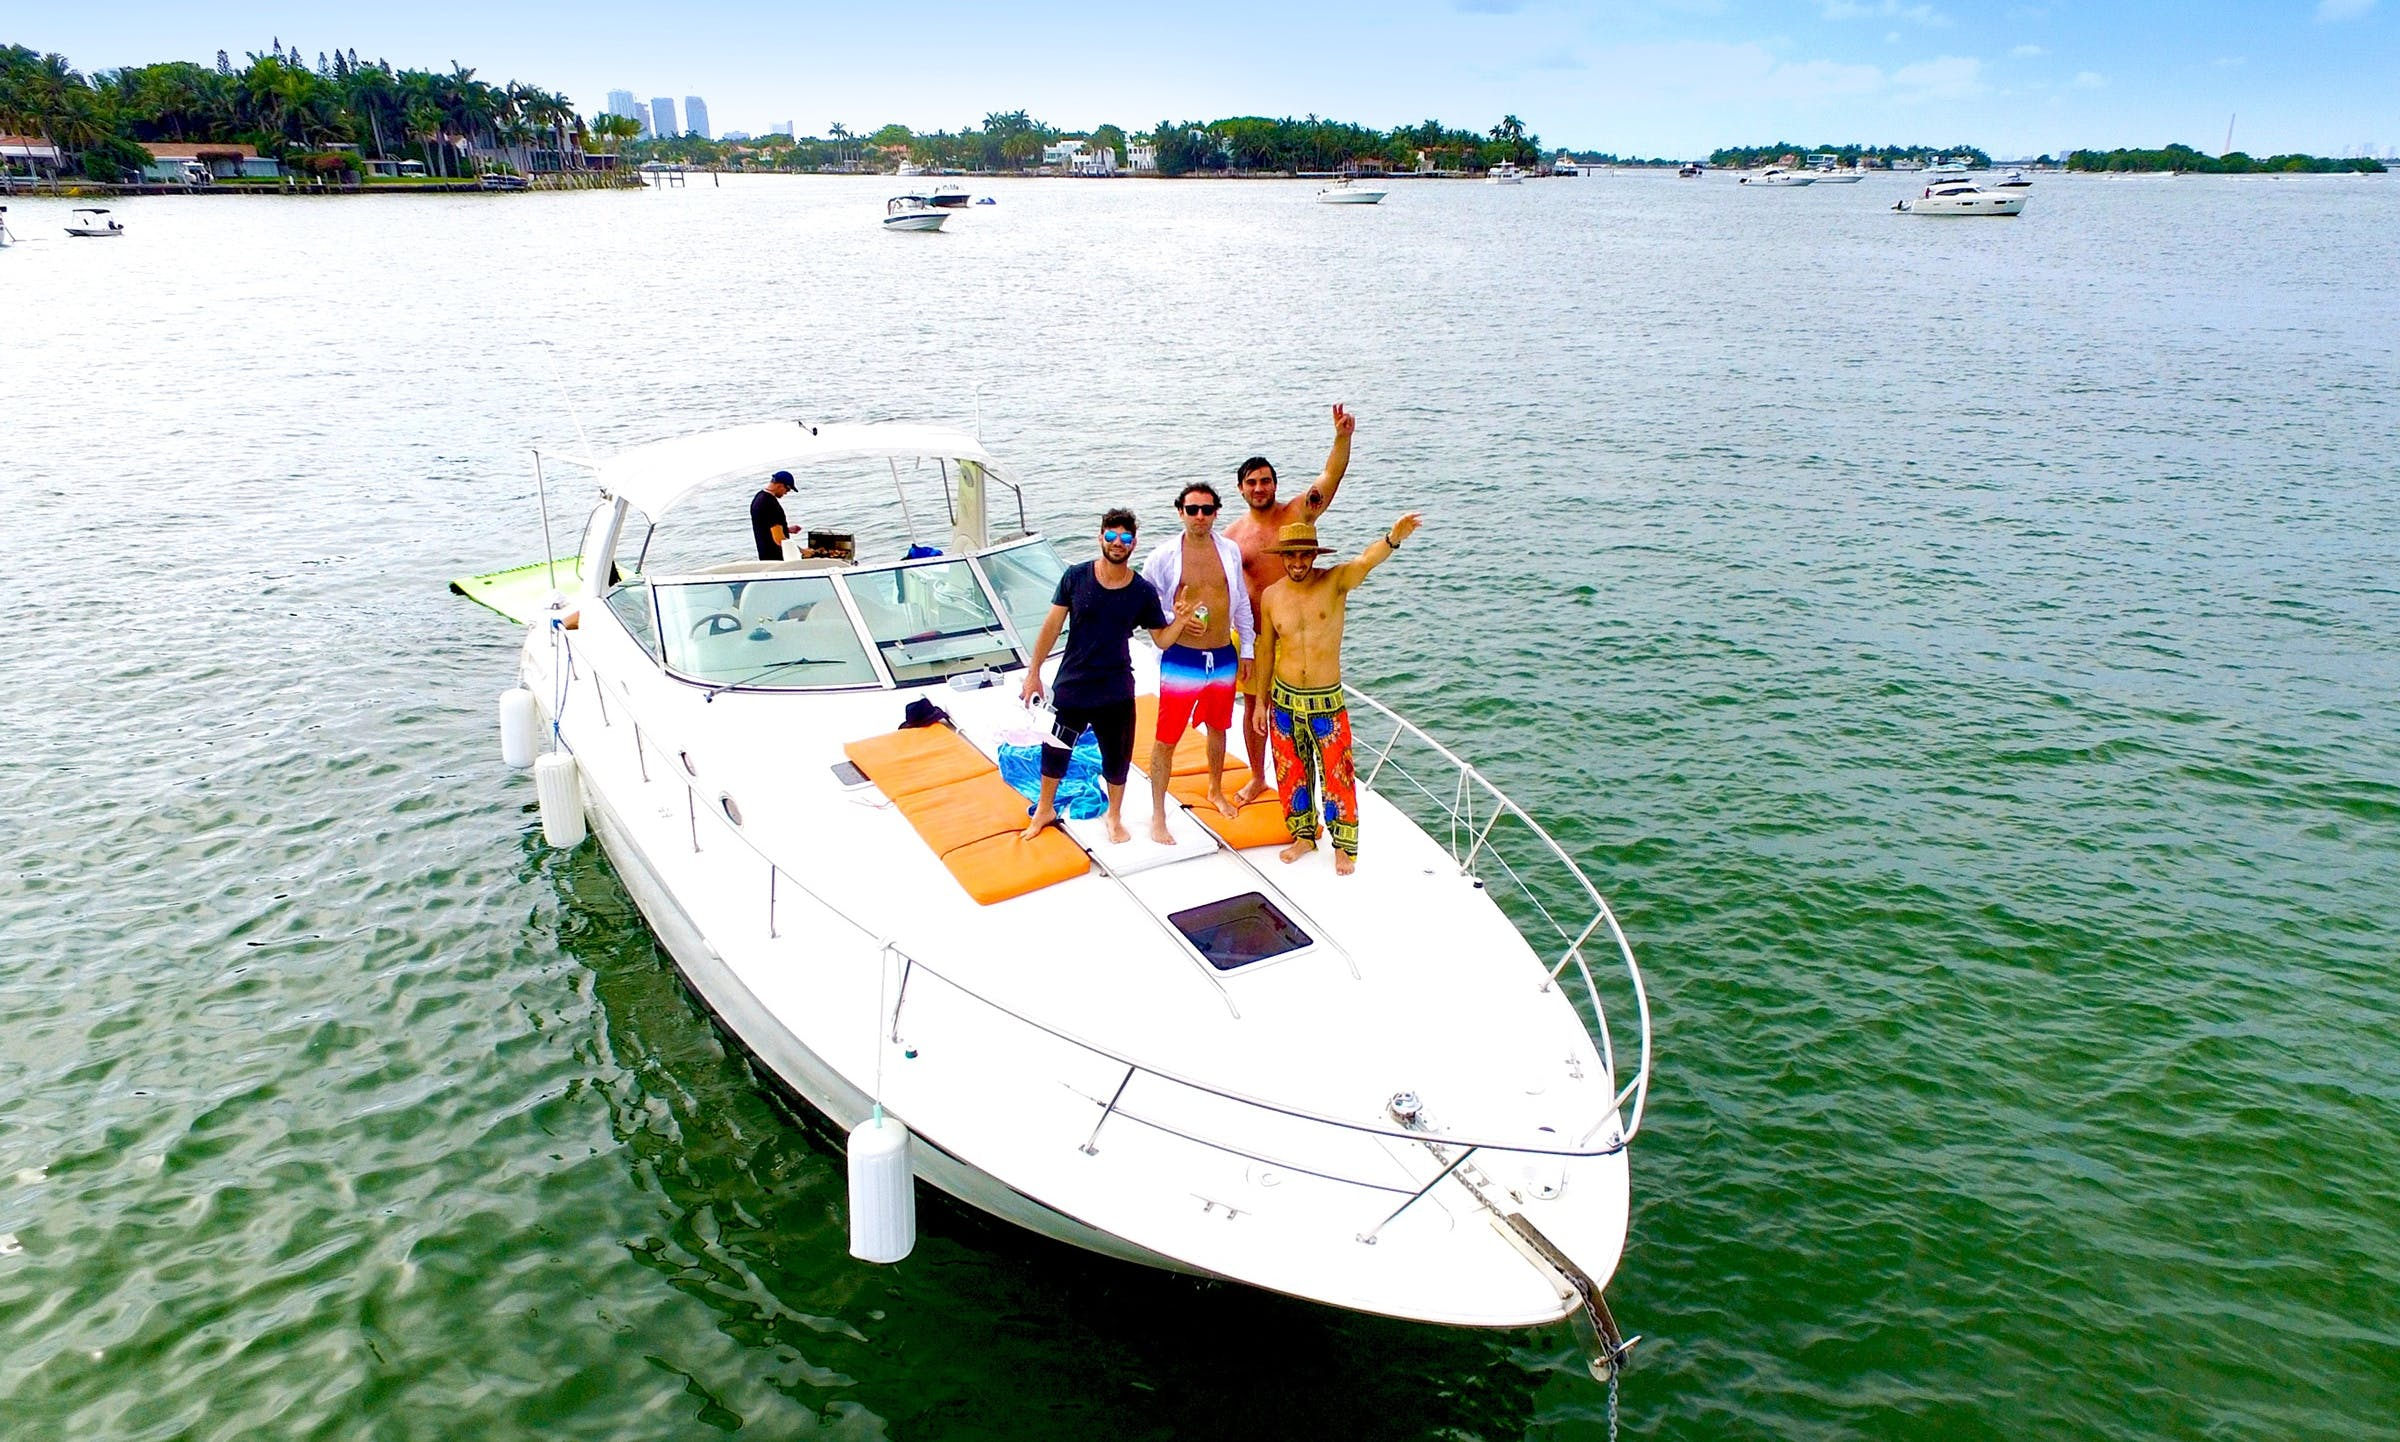 42ft Sea Ray Motor Yacht for 12 ppl